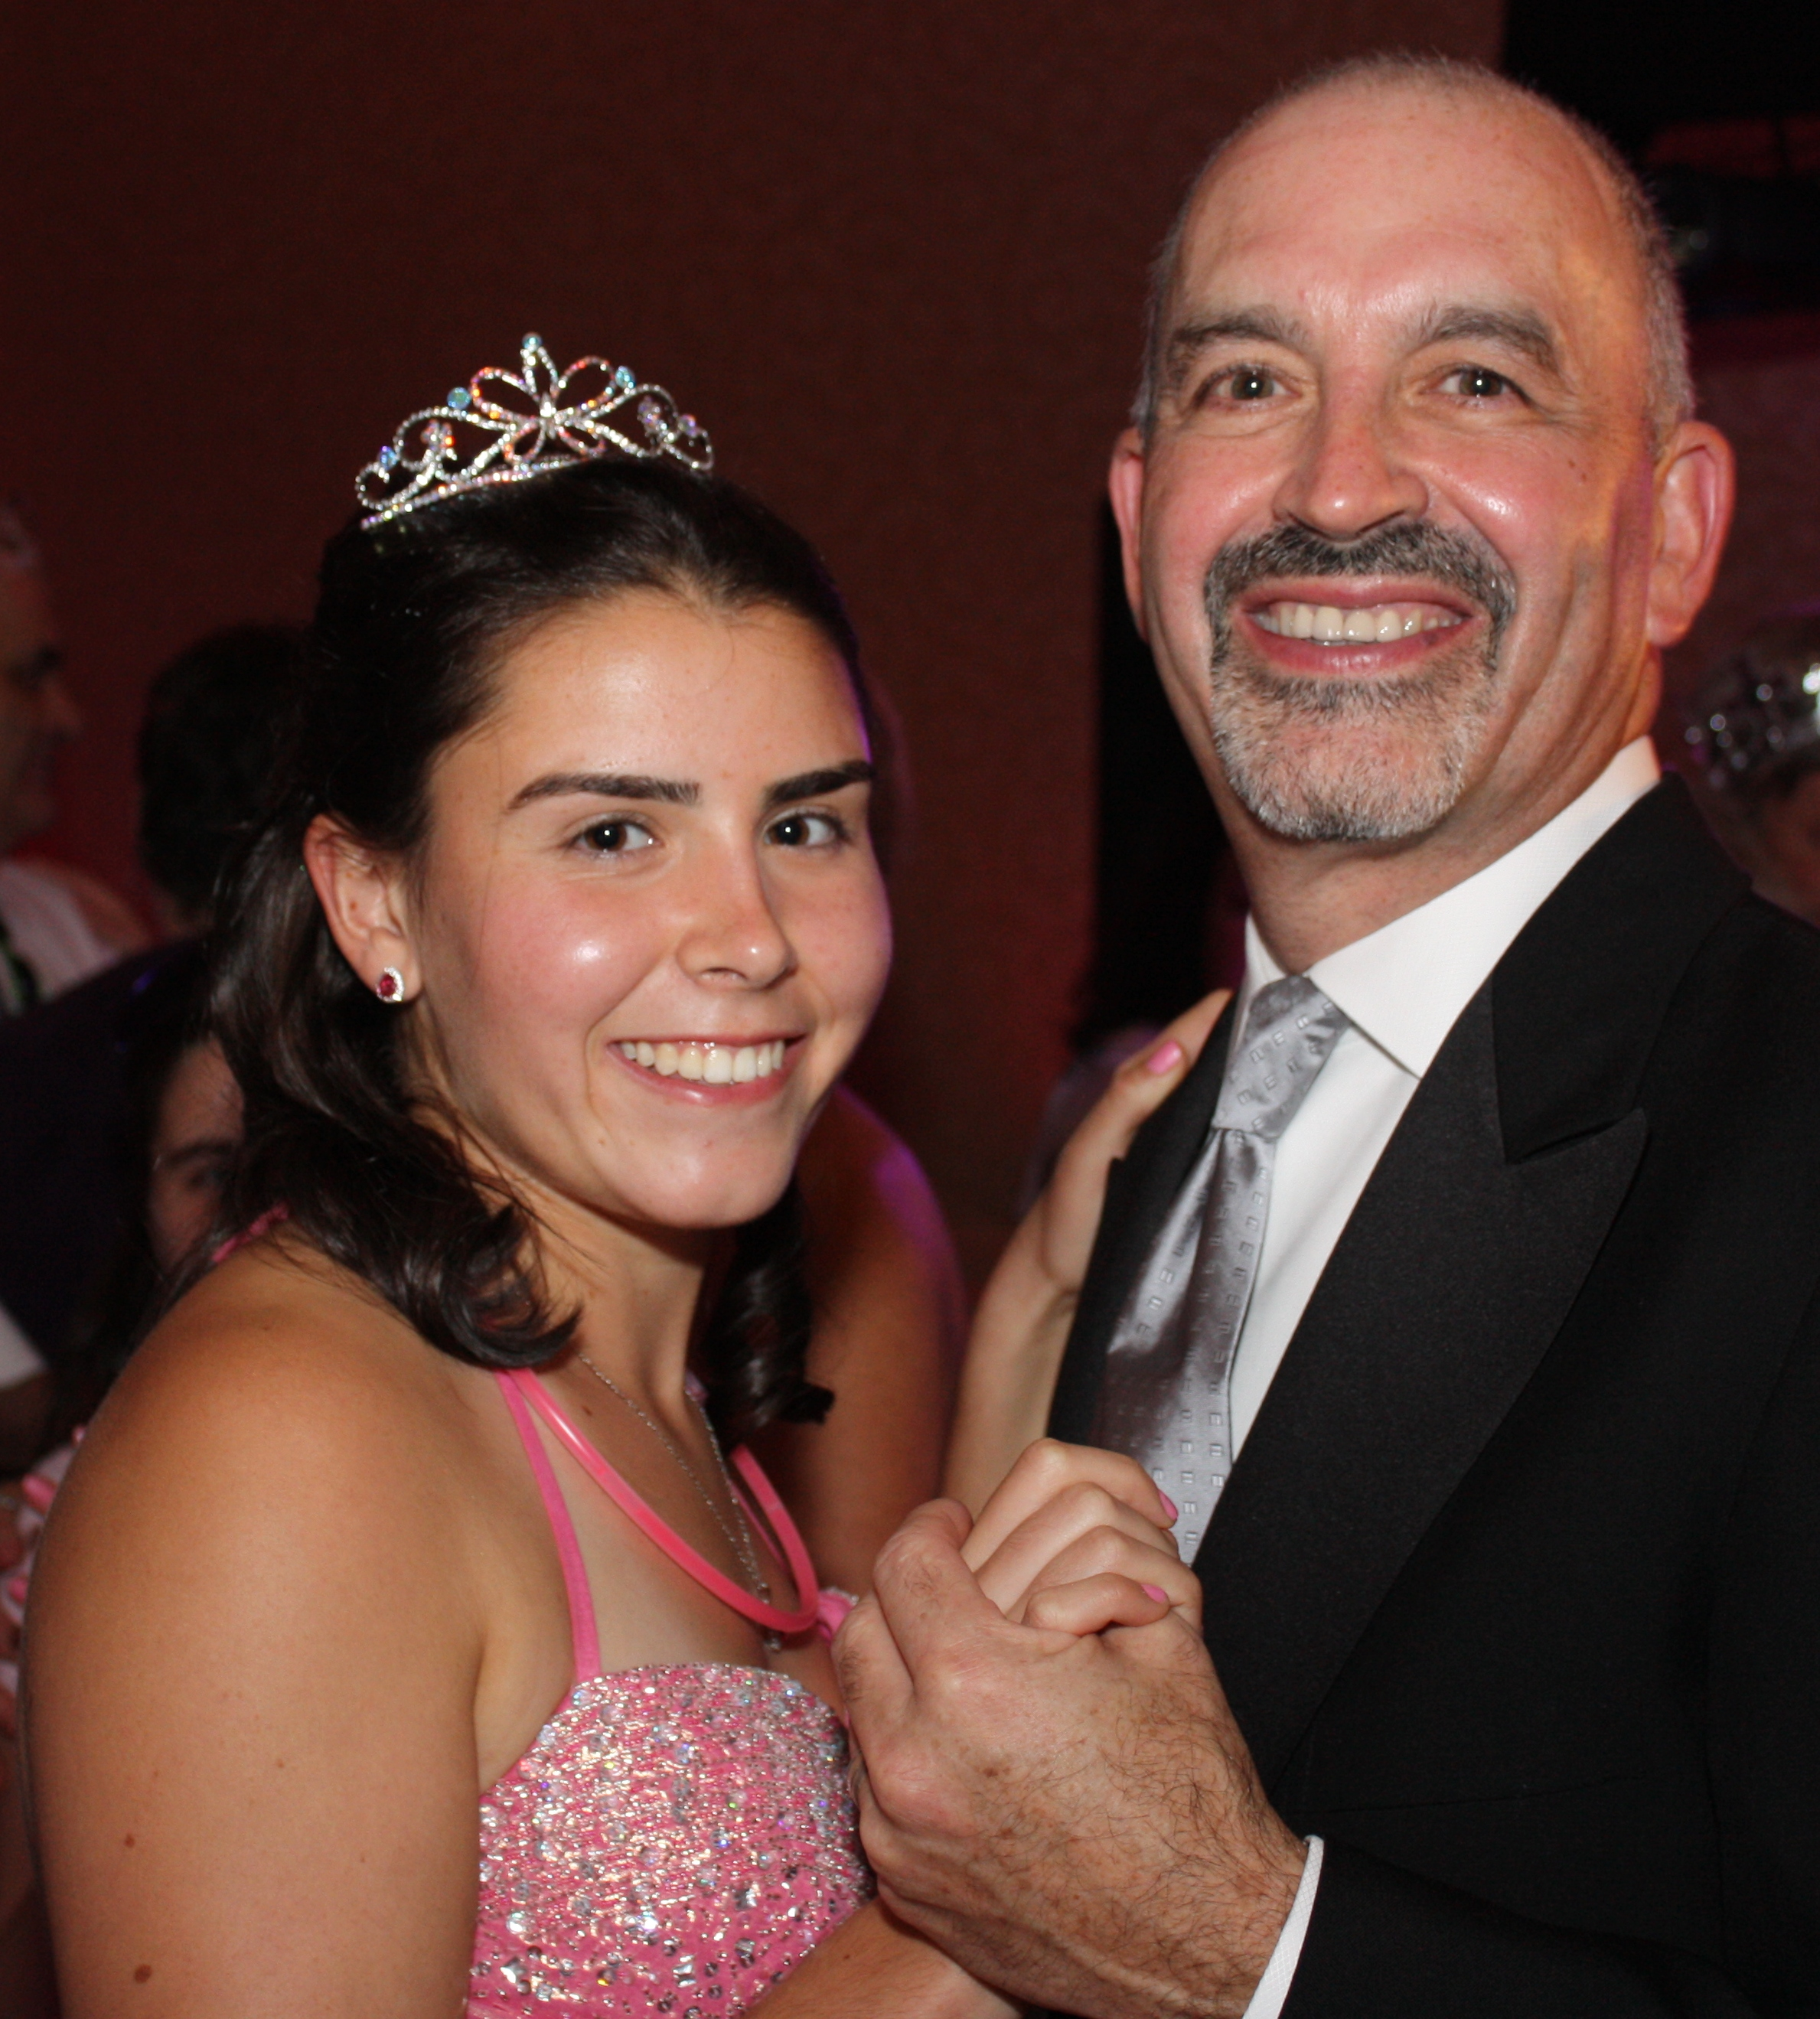 taylor madison and dad A Royal Sweet 16 for Madison at Dolce